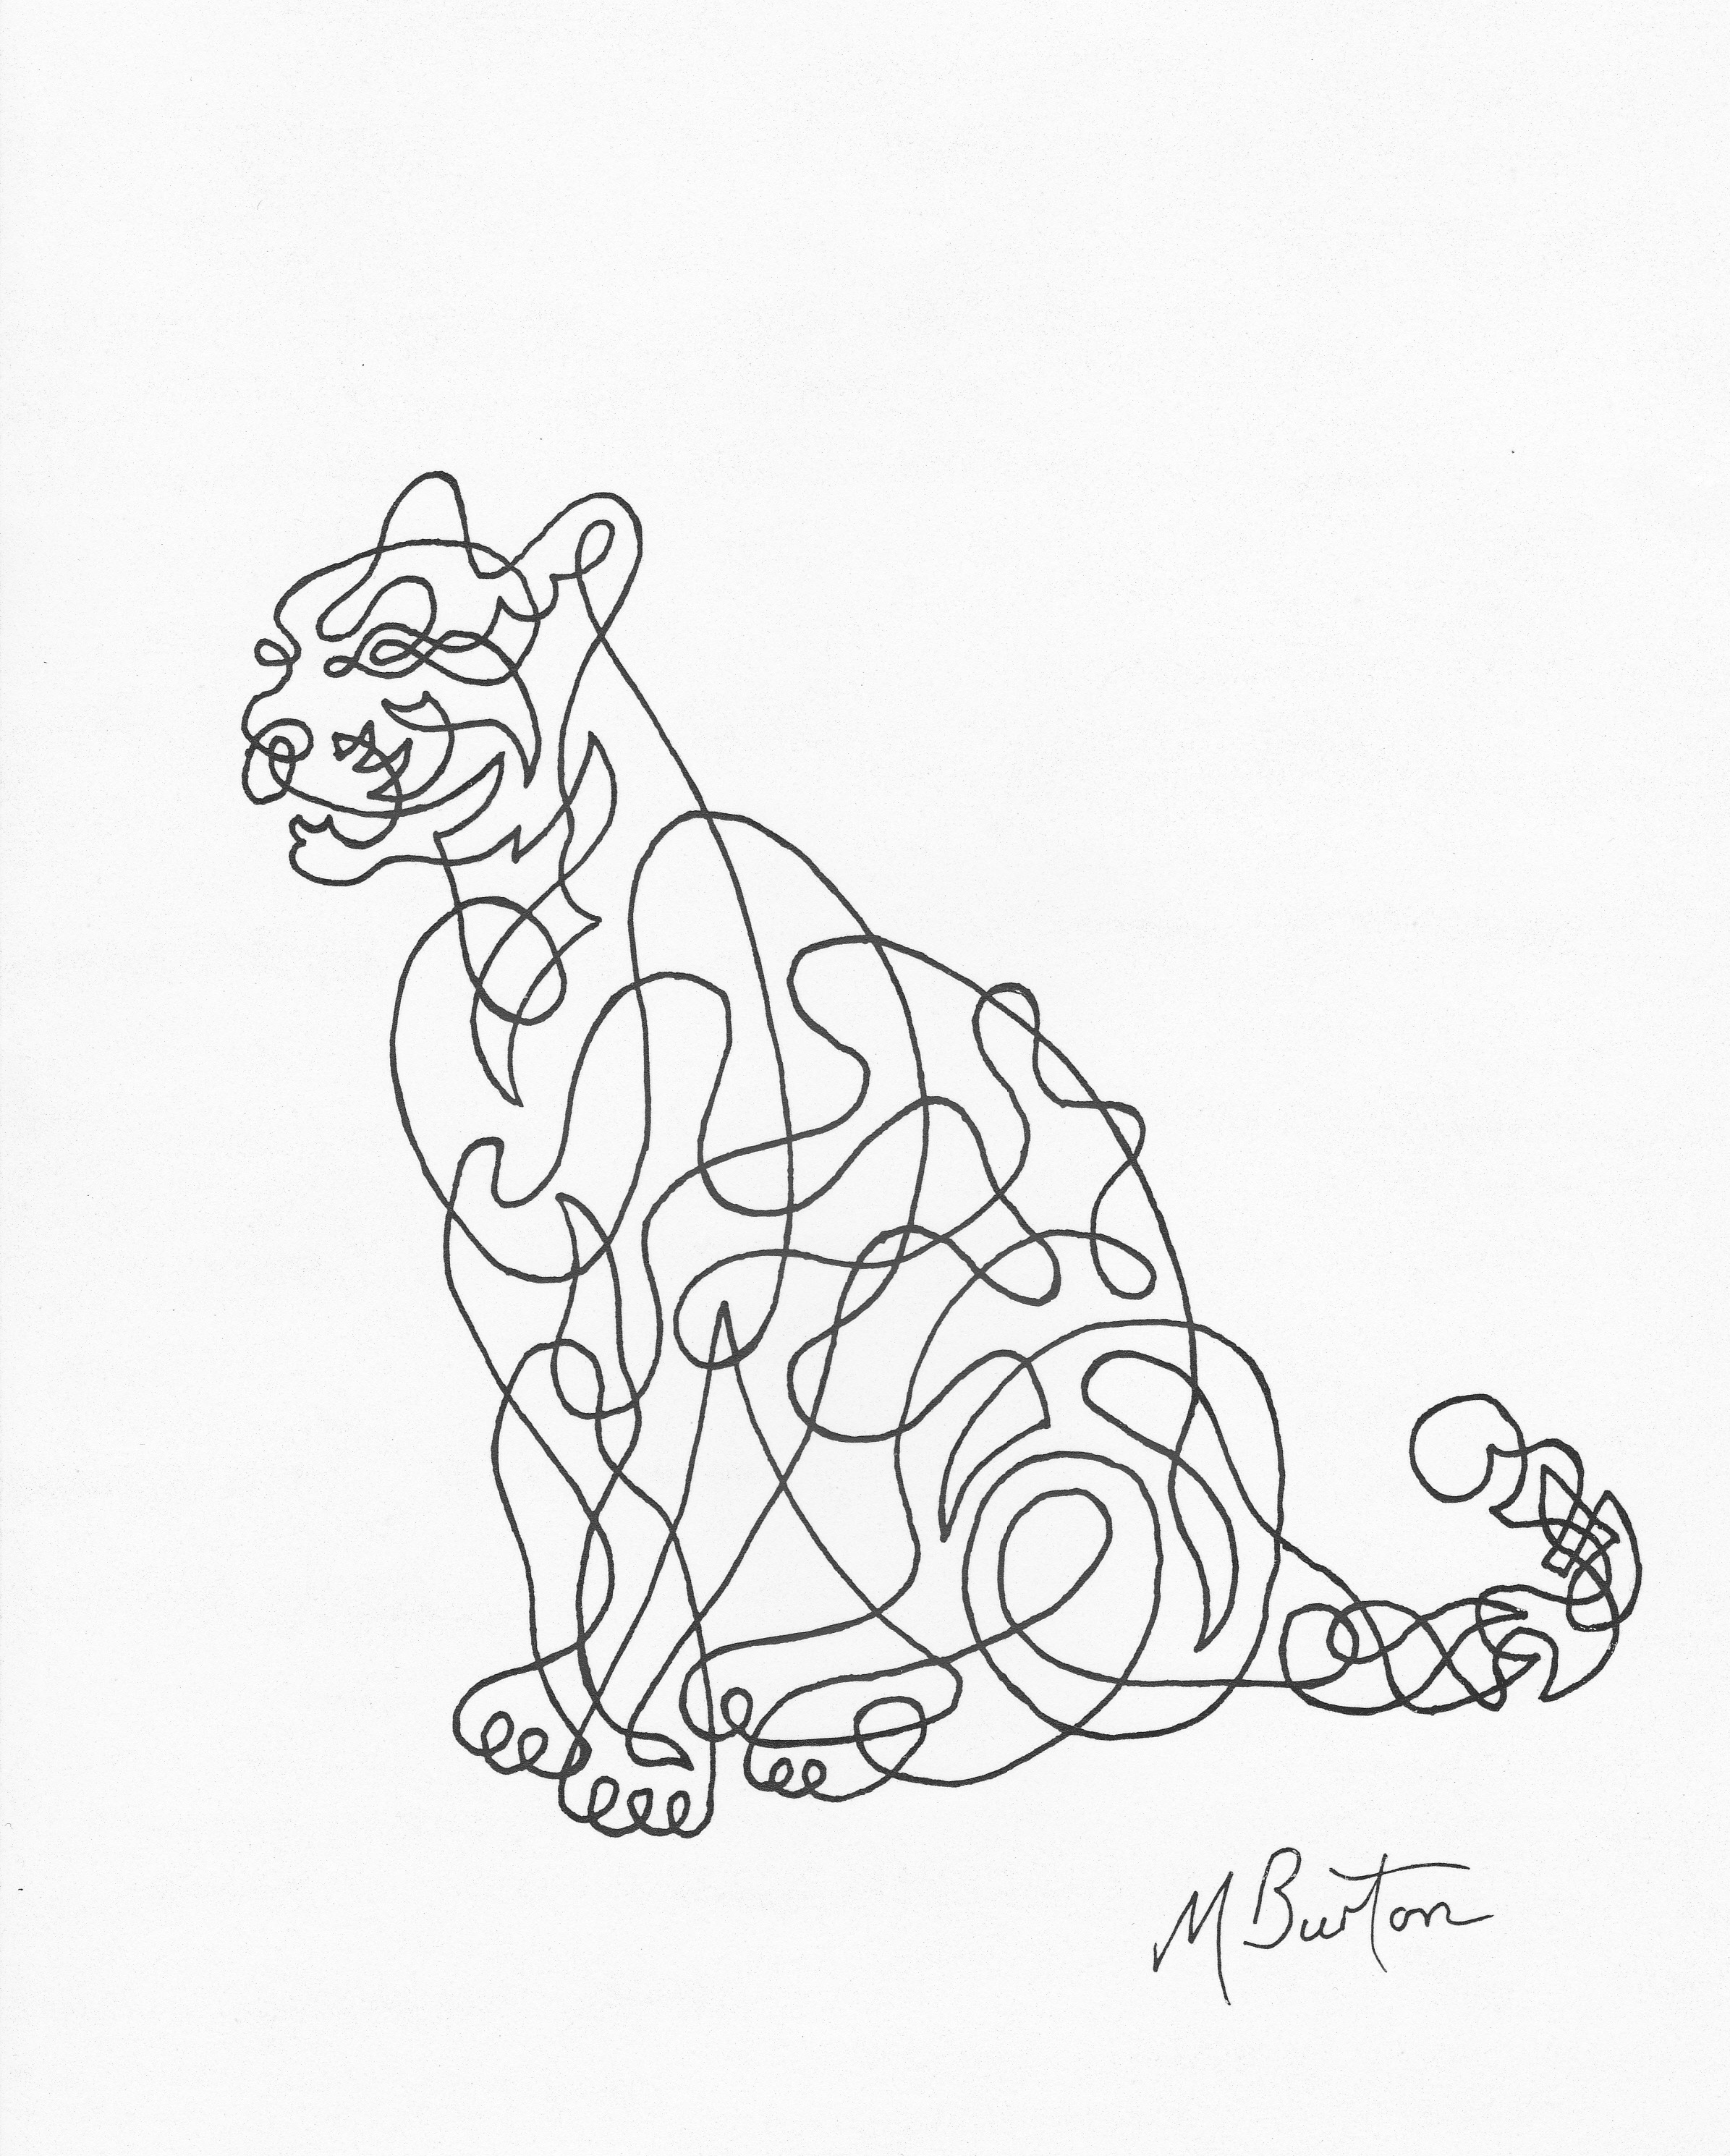 Line Drawing By Famous Artists : Mick burton continuous line drawing page